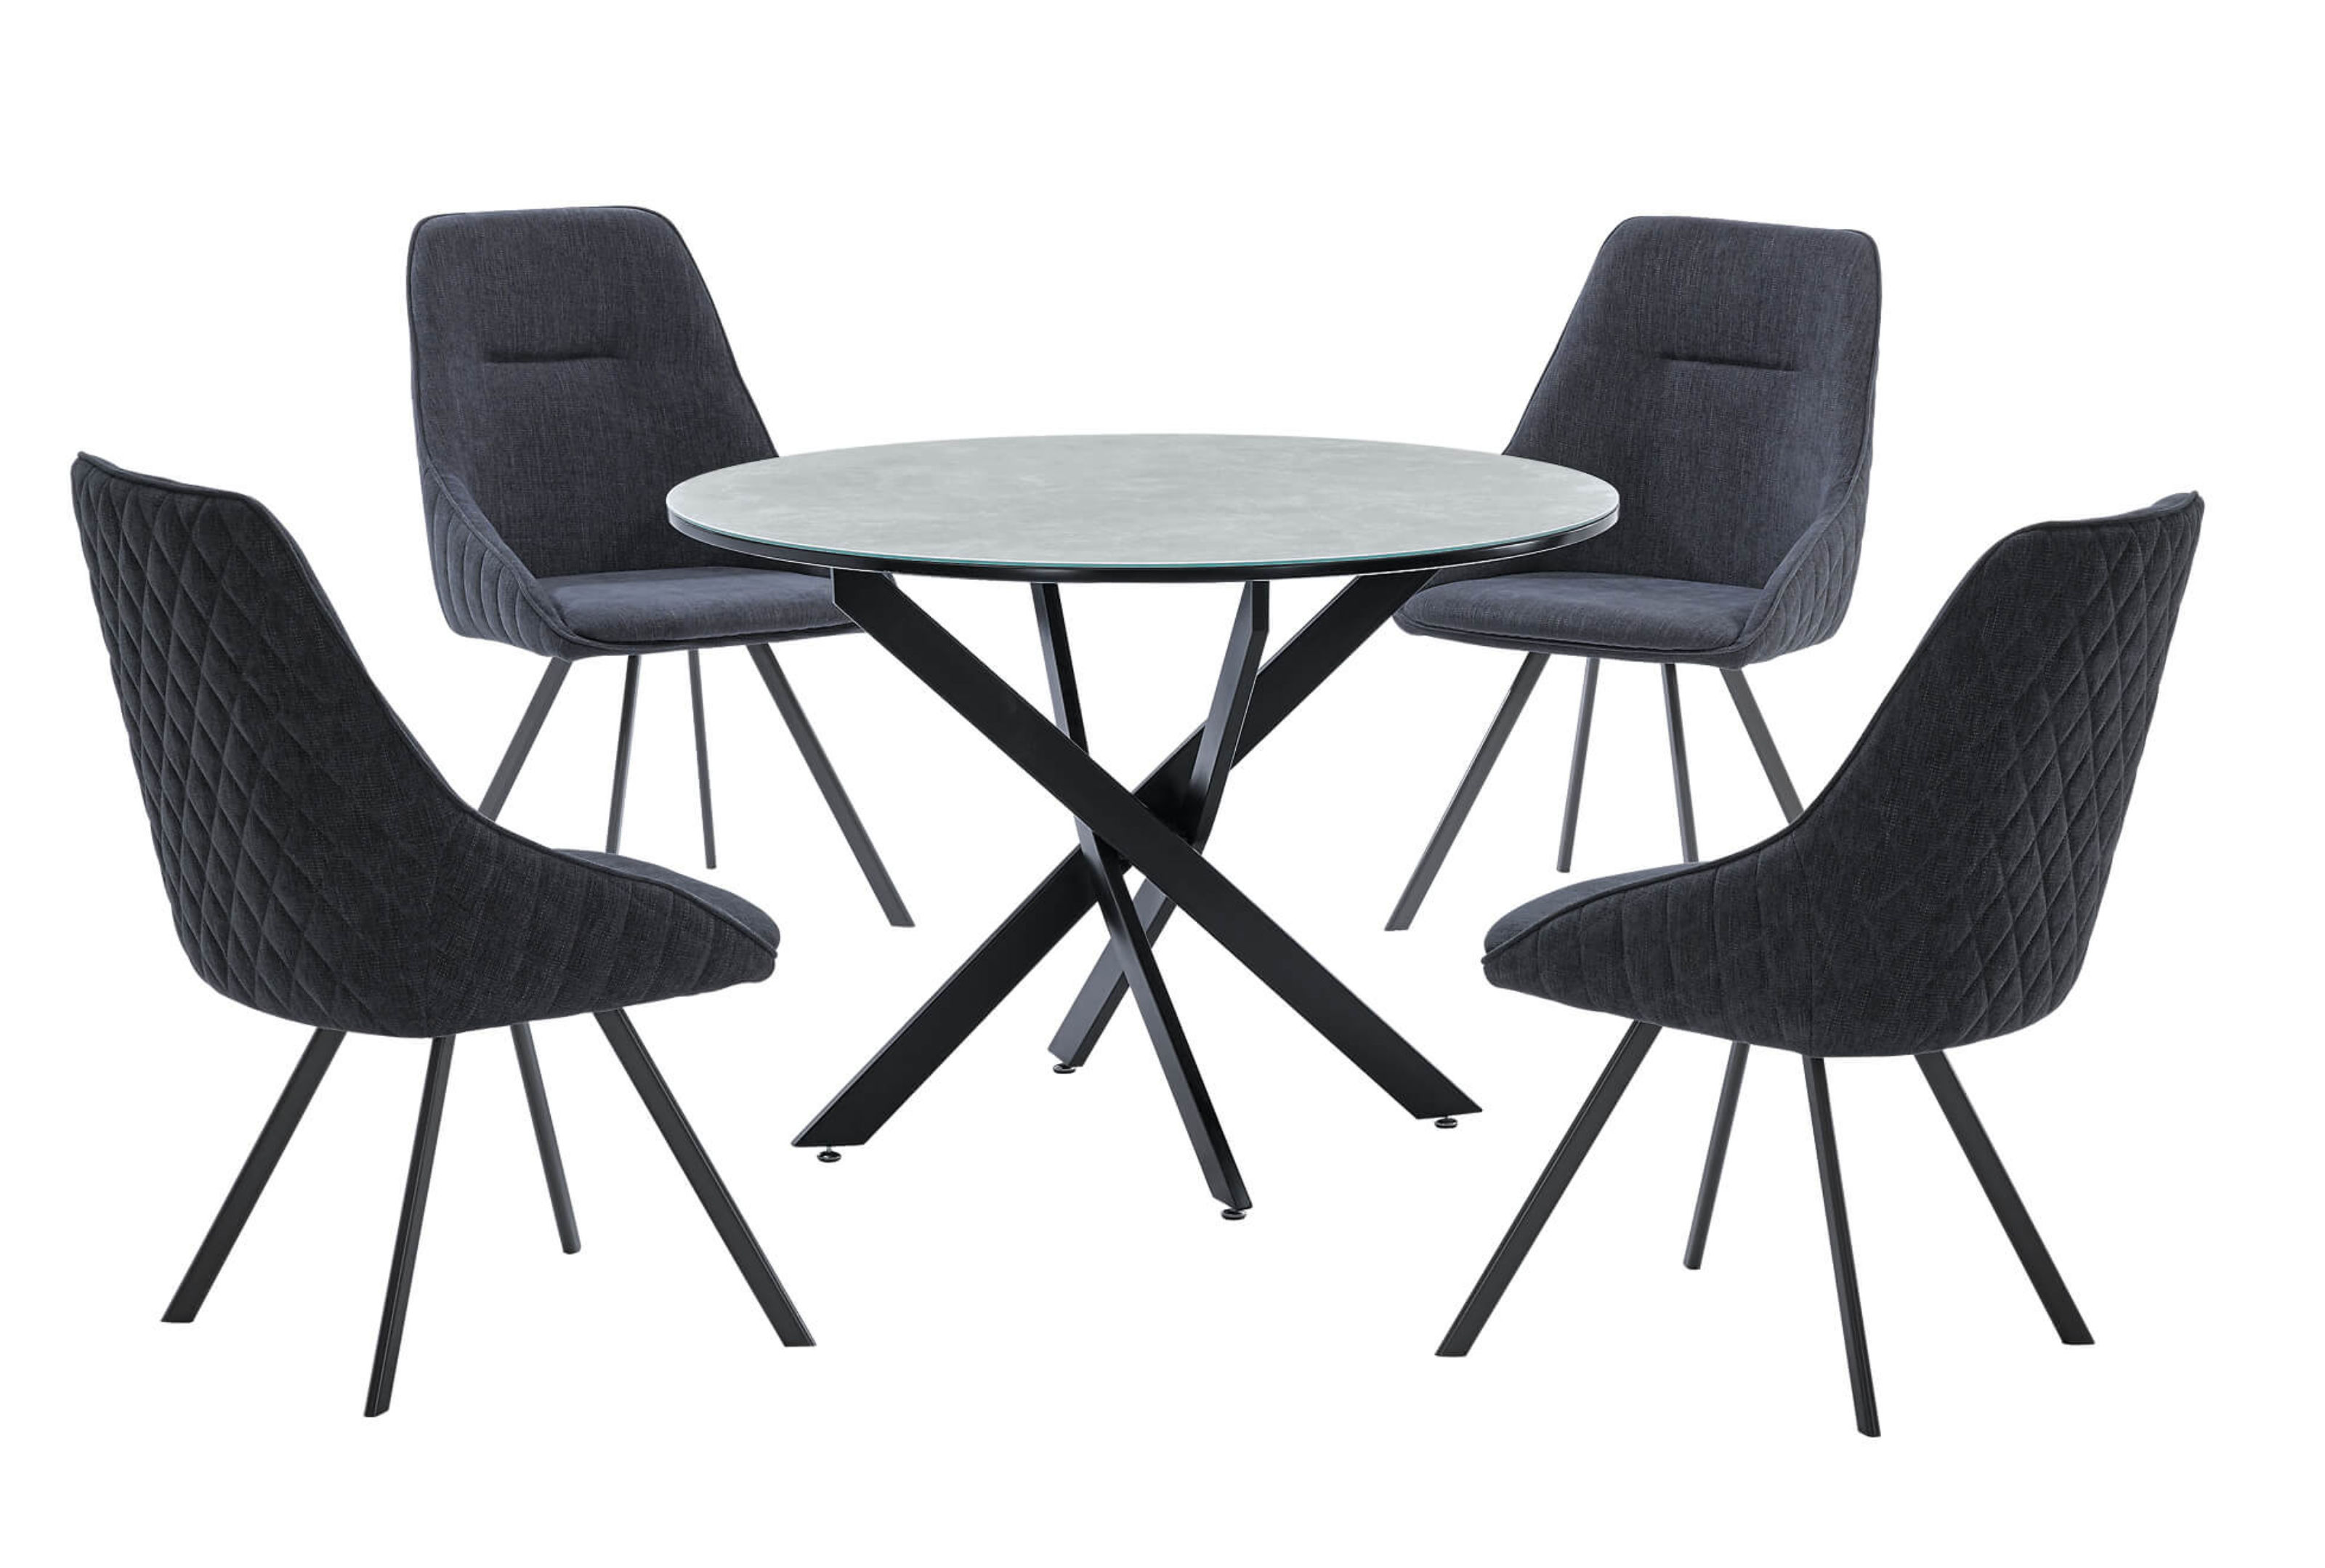 Battista Round Marble Effect Glass Top Dining Table With Black Metal Legs Designer Sofas4u